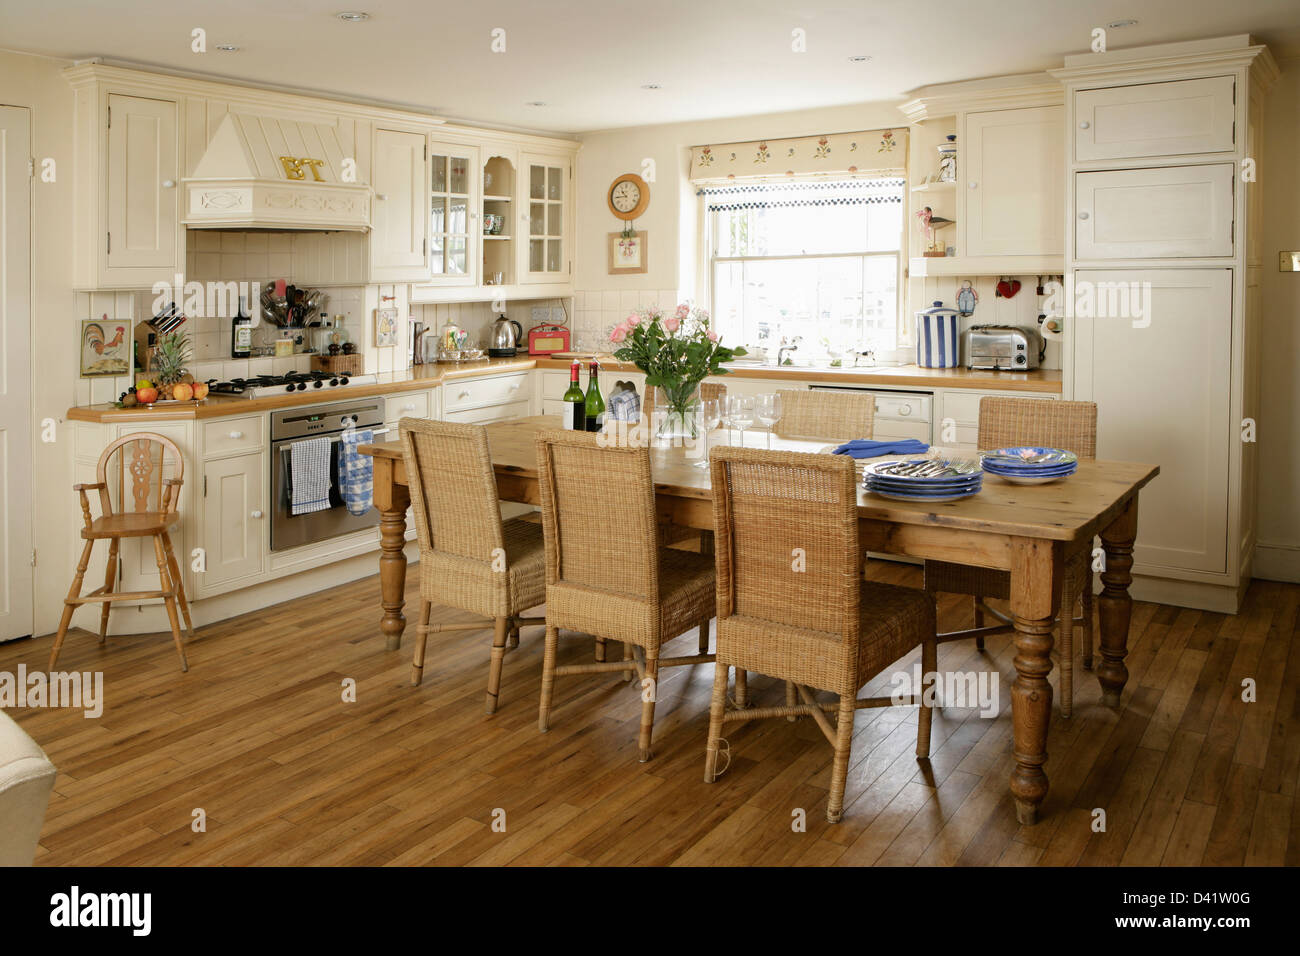 Tall Back Wicker Dining Chairs At Long Pine Table In Country Style Kitchen  With Childu0027s Wooden High Chair